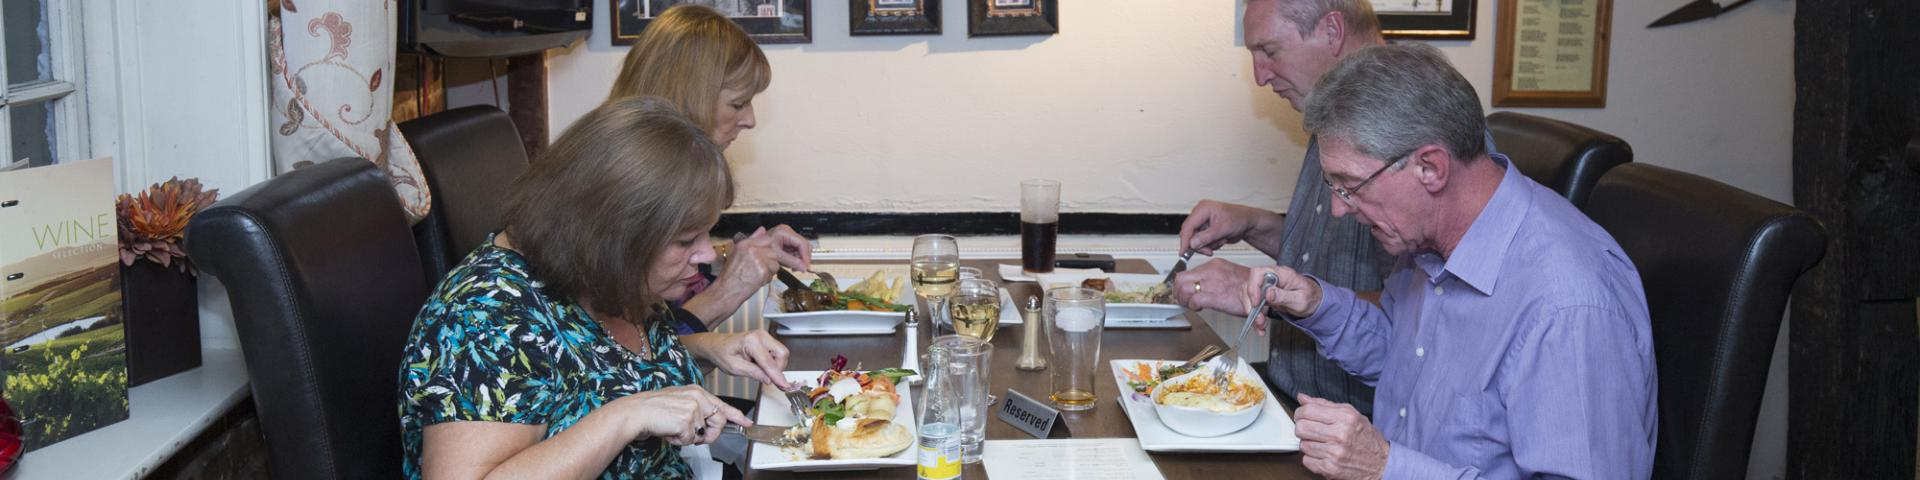 Food and Drink at The Woolpack Inn Yalding